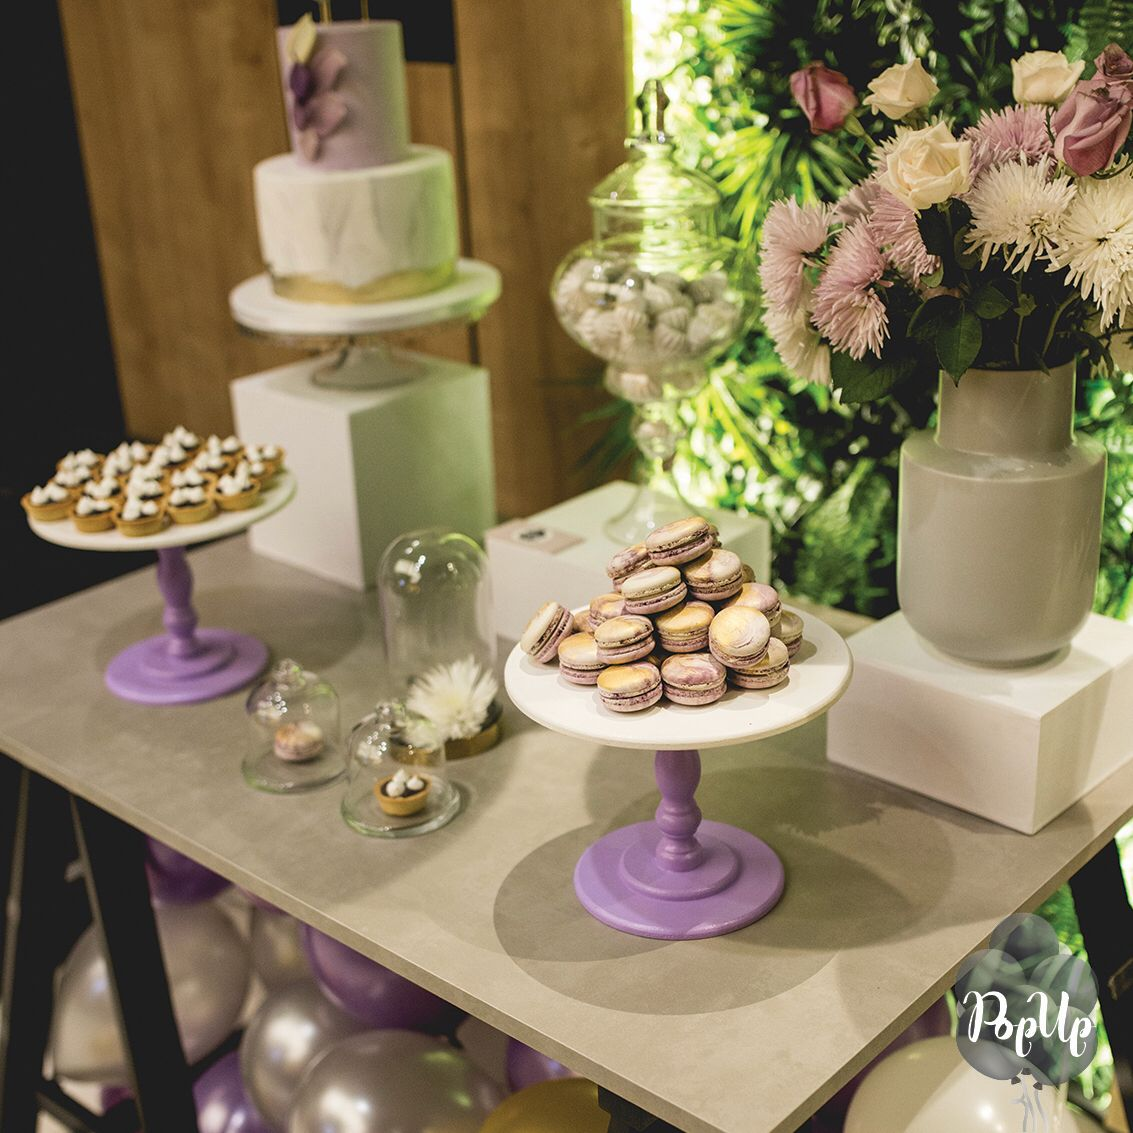 Popup Popupslatkisto Instagram Photos And Videos Candy Table Decorations Sweet Table Decorations Table Decorations